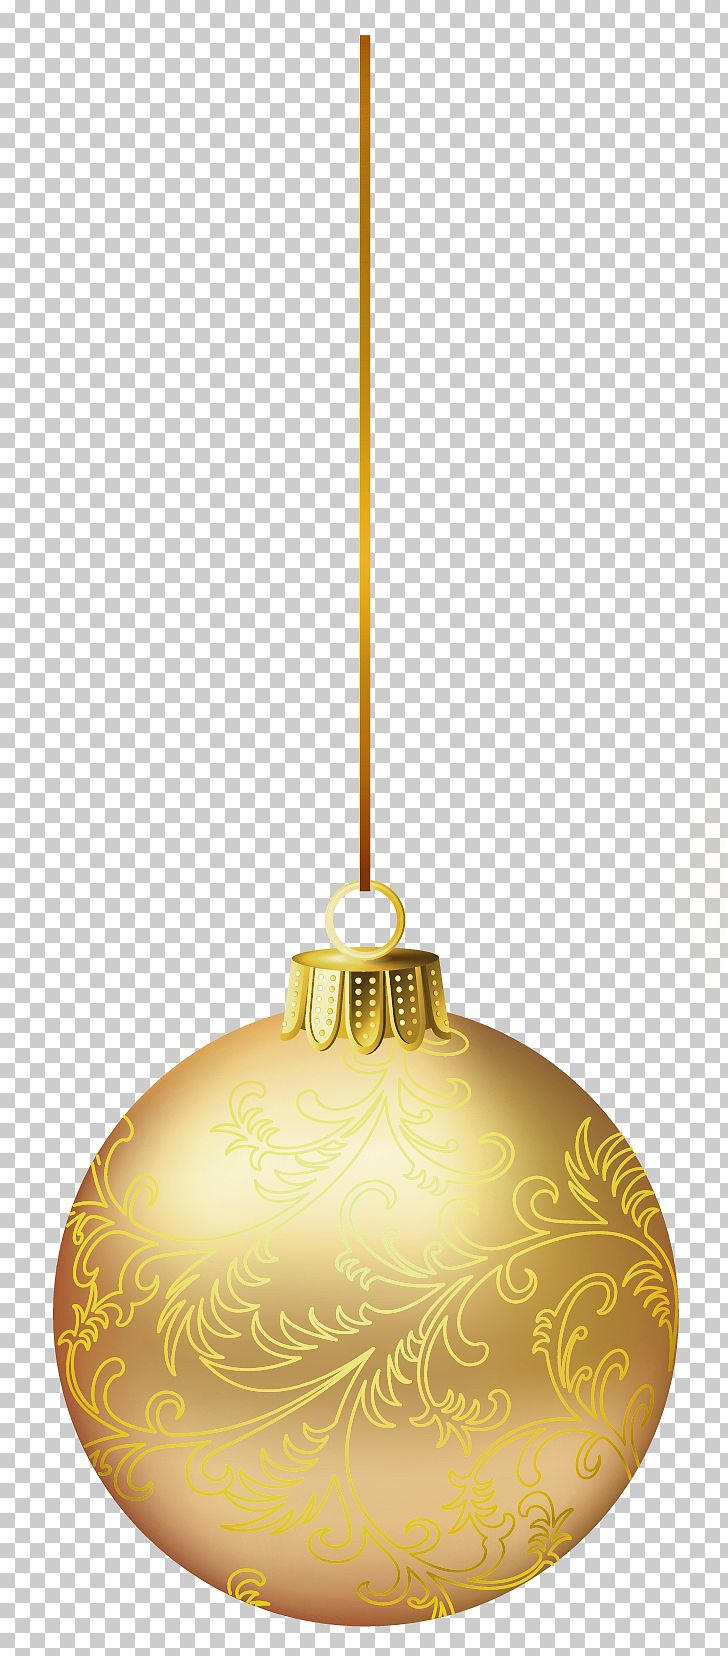 Lighting Christmas Ornament Design PNG, Clipart, Christmas, Christmas Ball, Christmas Clipart, Christmas Ornament, Clipart Free PNG Download